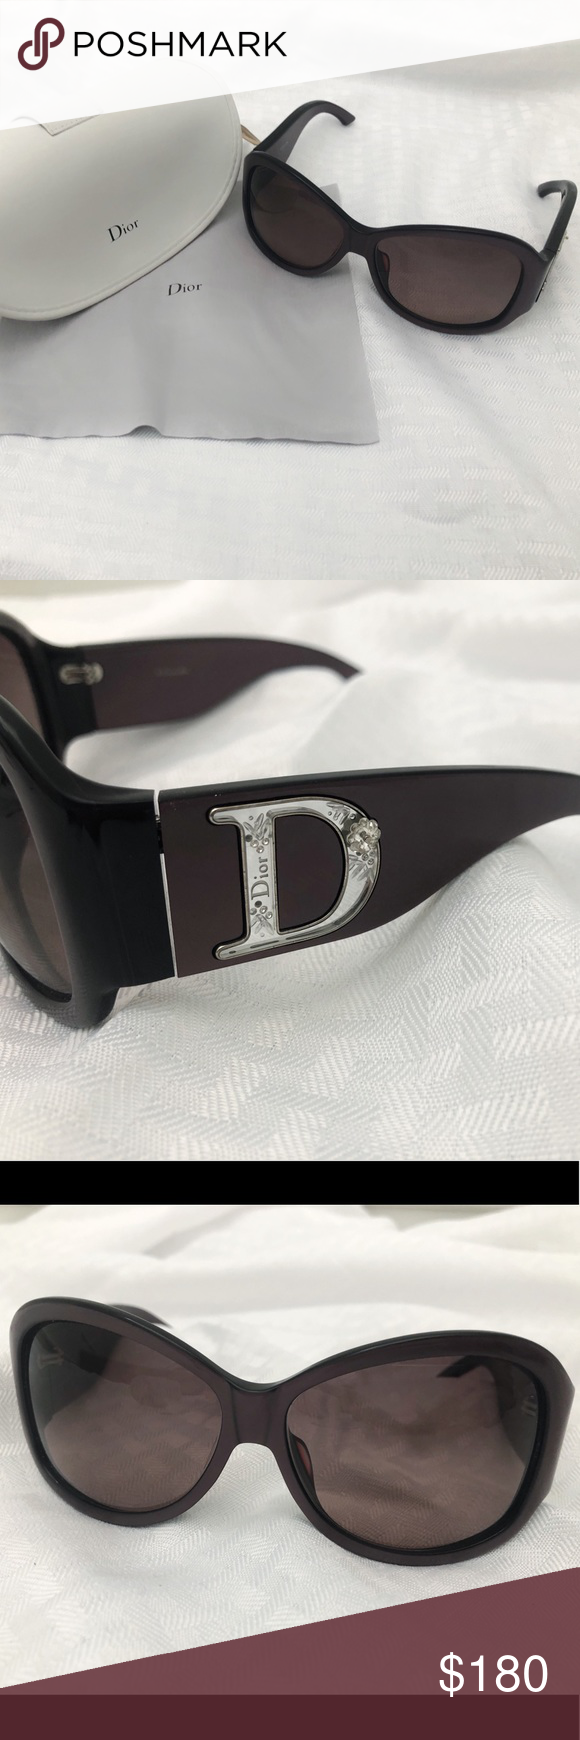 dcb8e2bb53e9 Authentic Christian Dior Rhinestone Sunglasses Authentic Christian Dior  sunglasses in like new condition. Beautiful flower